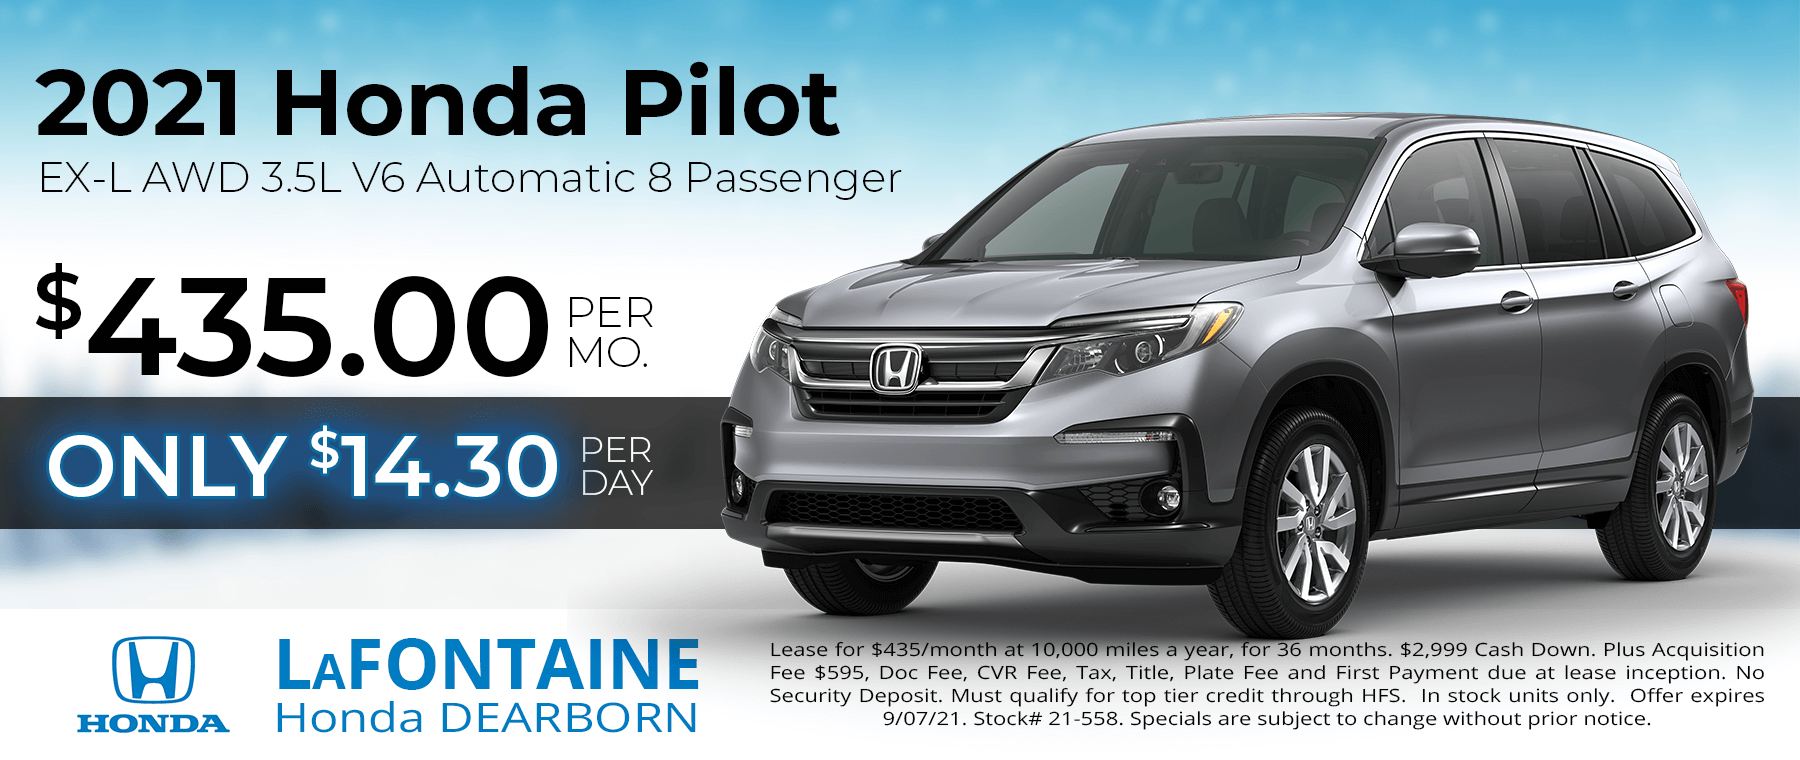 Lease a 2021 Honda Pilot EX-L for $435/Month for 36 Months